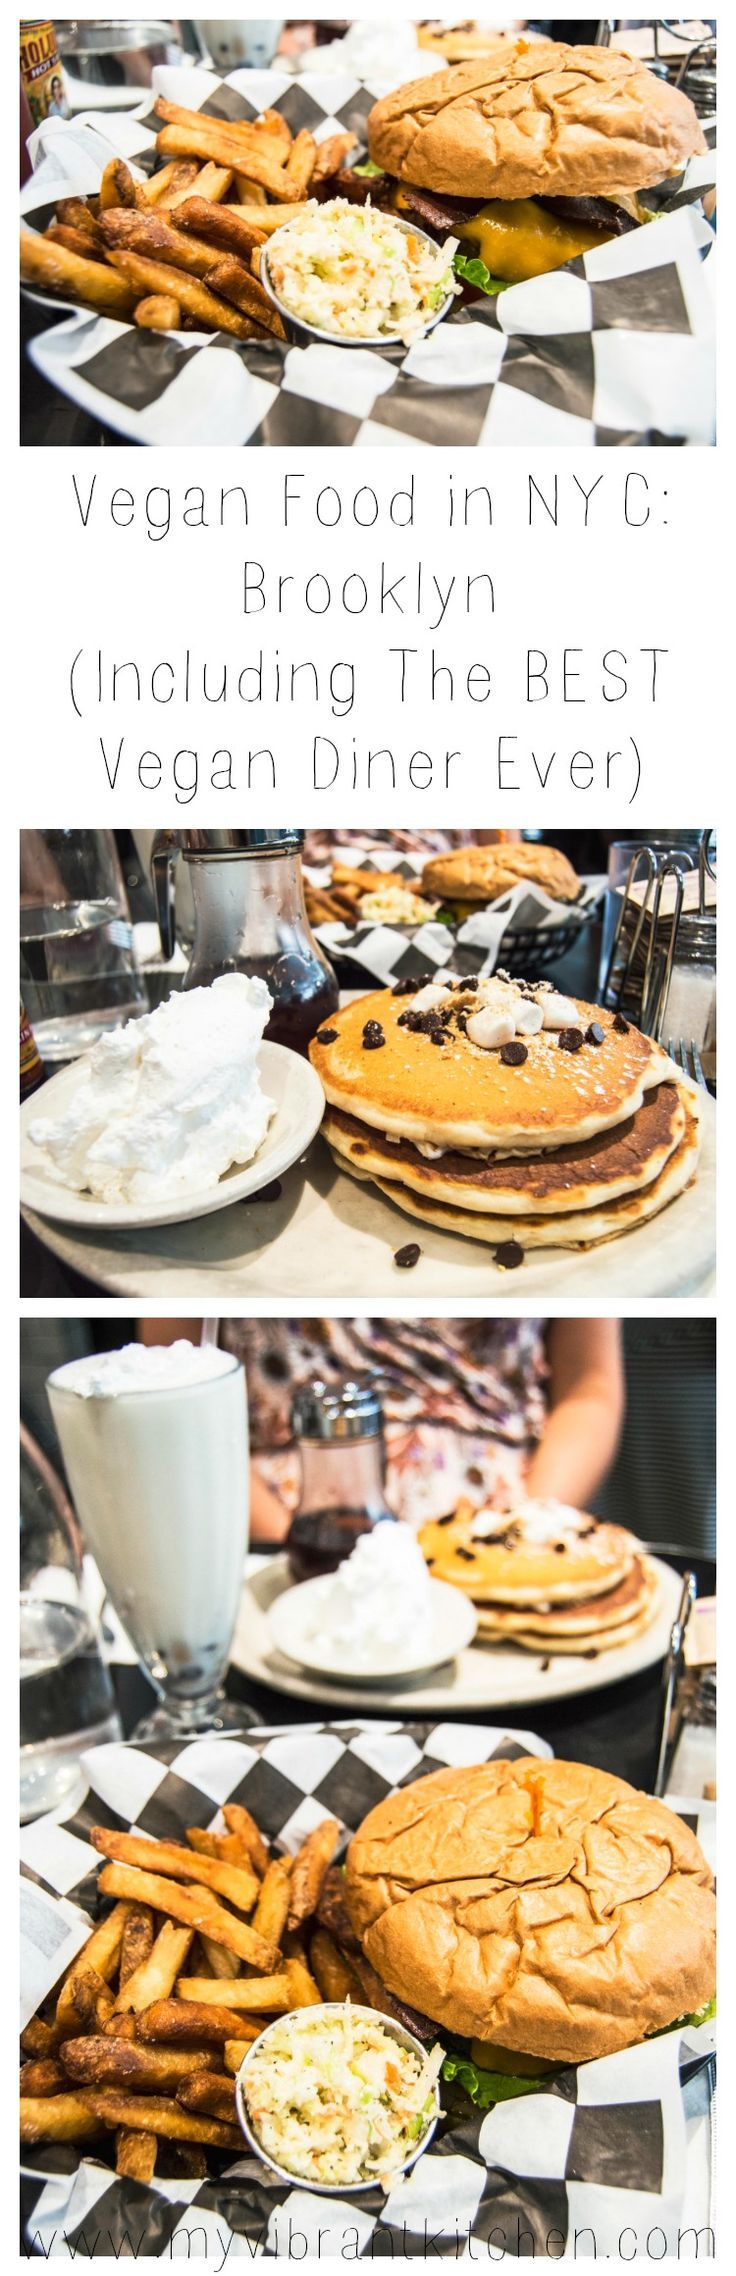 My Vibrant Kitchen | Vegan Food in New York City: Manhattan, Including BEST Diner Ever | http://myvibrantkitchen.com